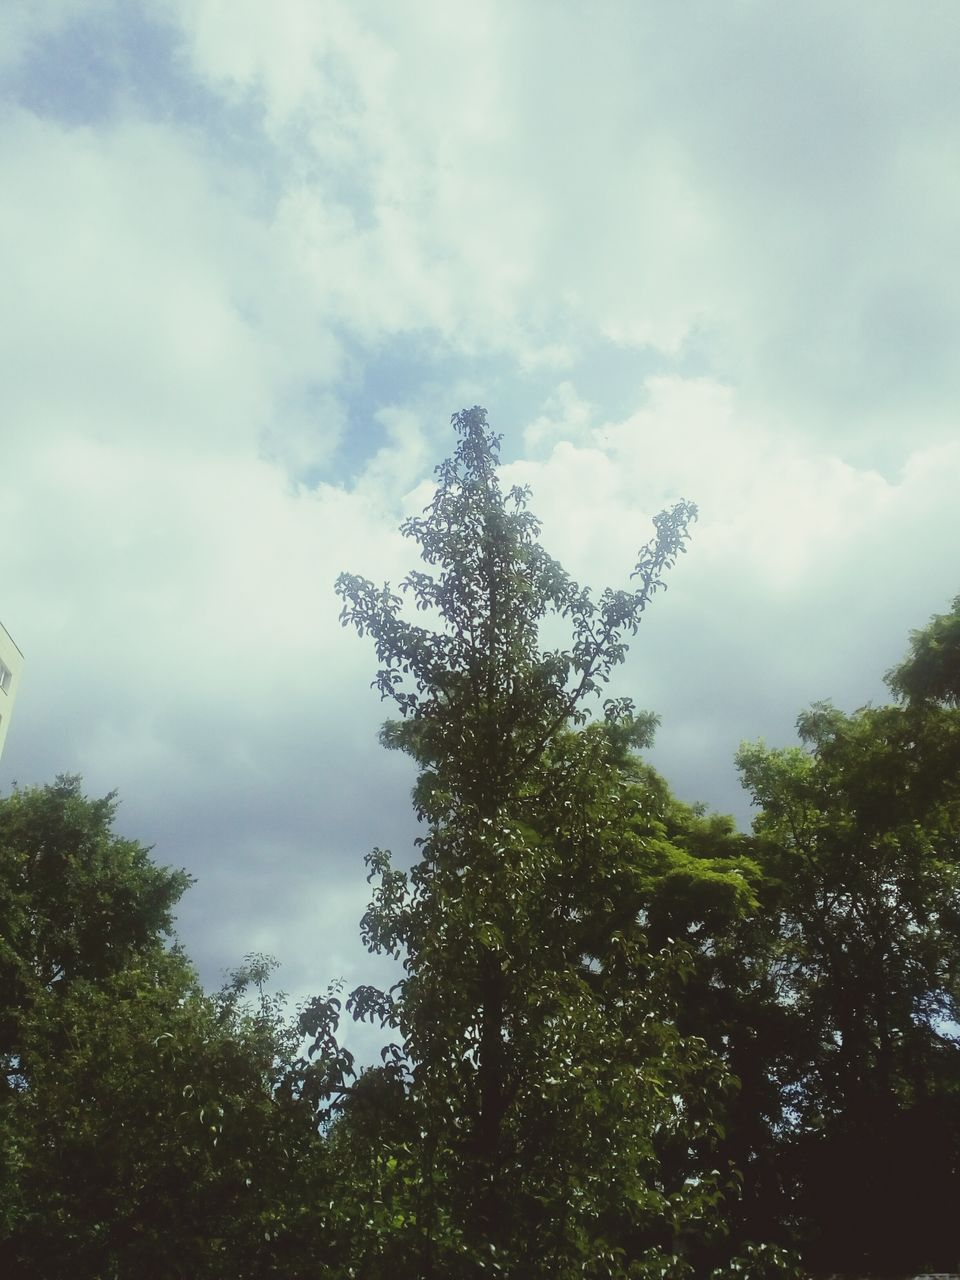 tree, nature, sky, low angle view, cloud - sky, day, outdoors, growth, beauty in nature, no people, tranquility, scenics, forest